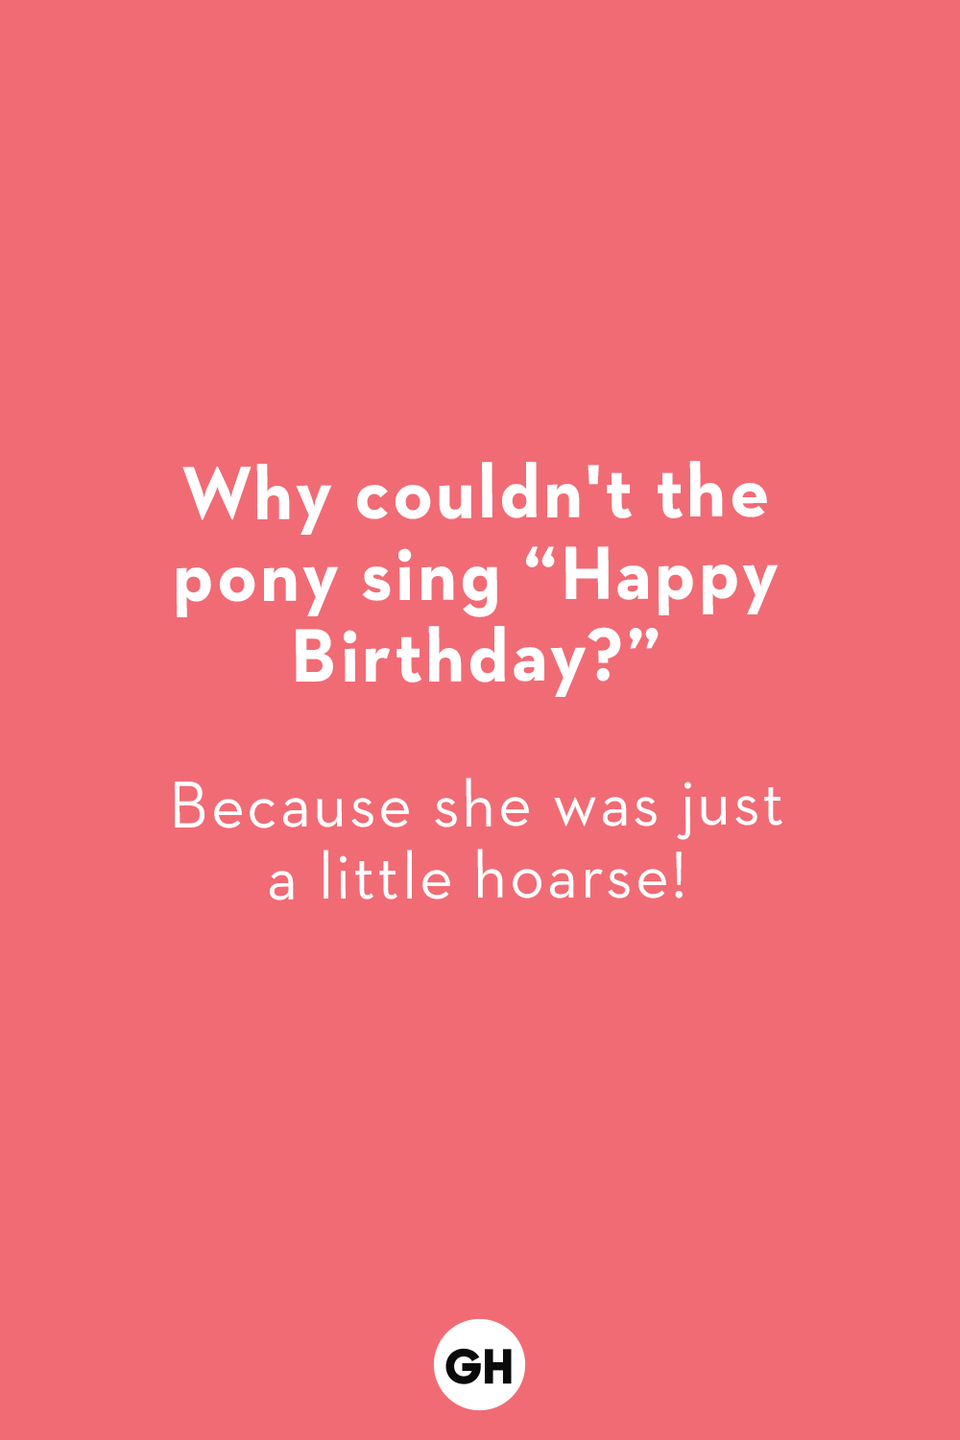 <p>Because she was just a little hoarse!</p>